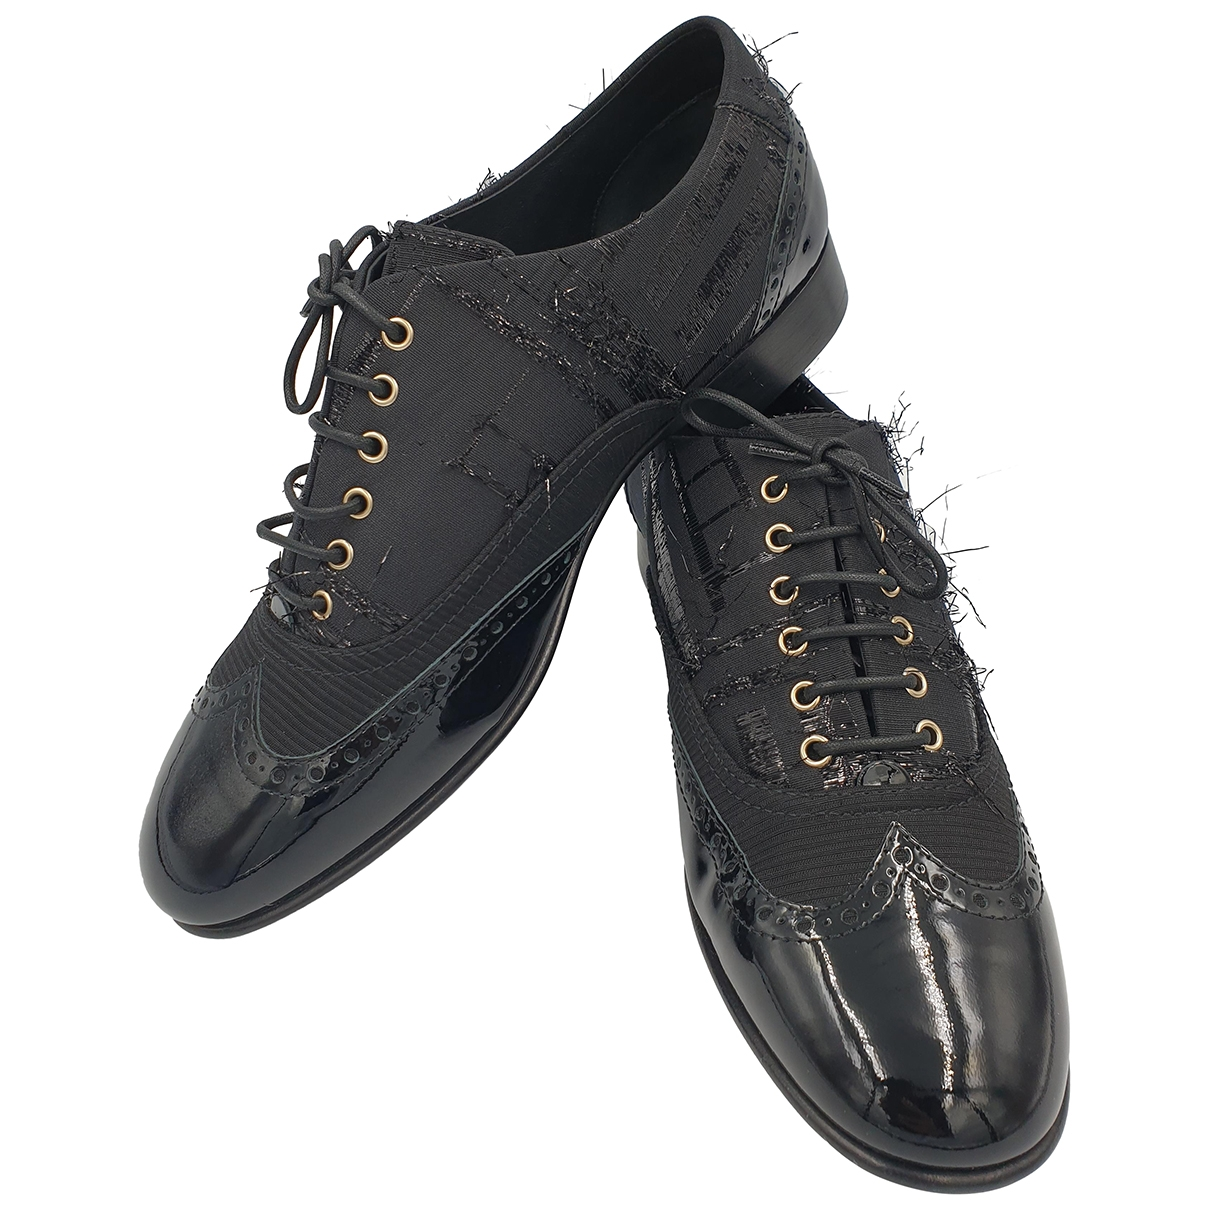 Chanel \N Black Patent leather Lace ups for Women 40 EU